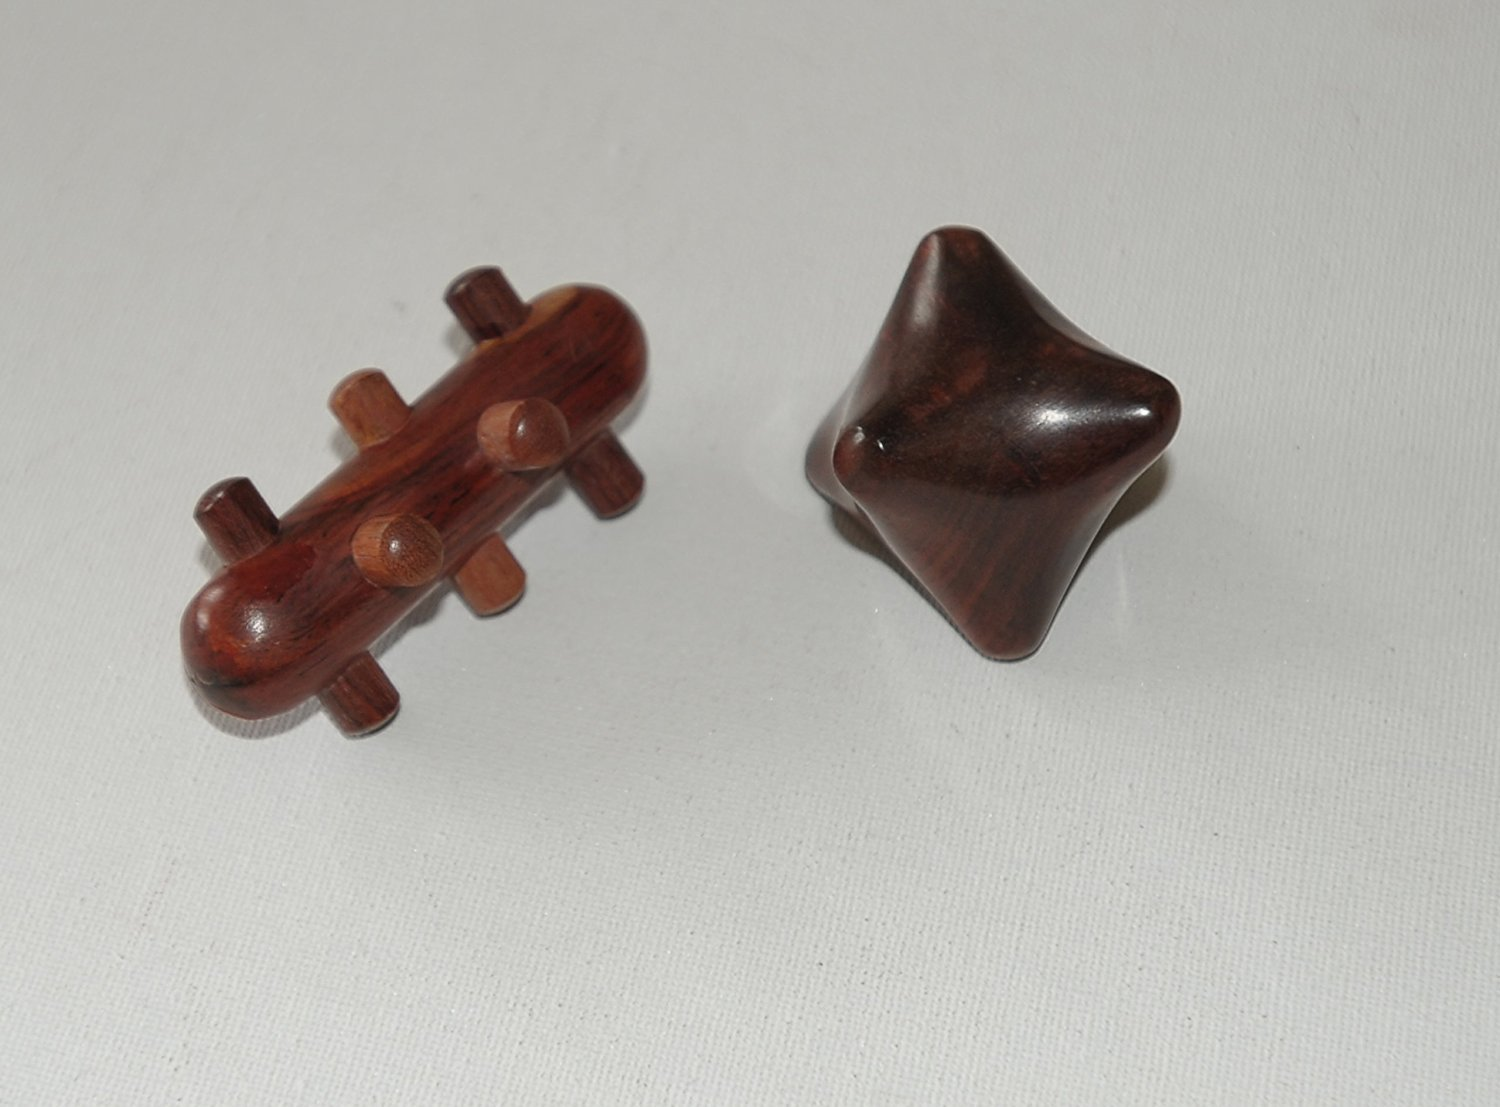 set of two different kinds of Massage Knobbles,Save your thumbs from the stress of trigger point the